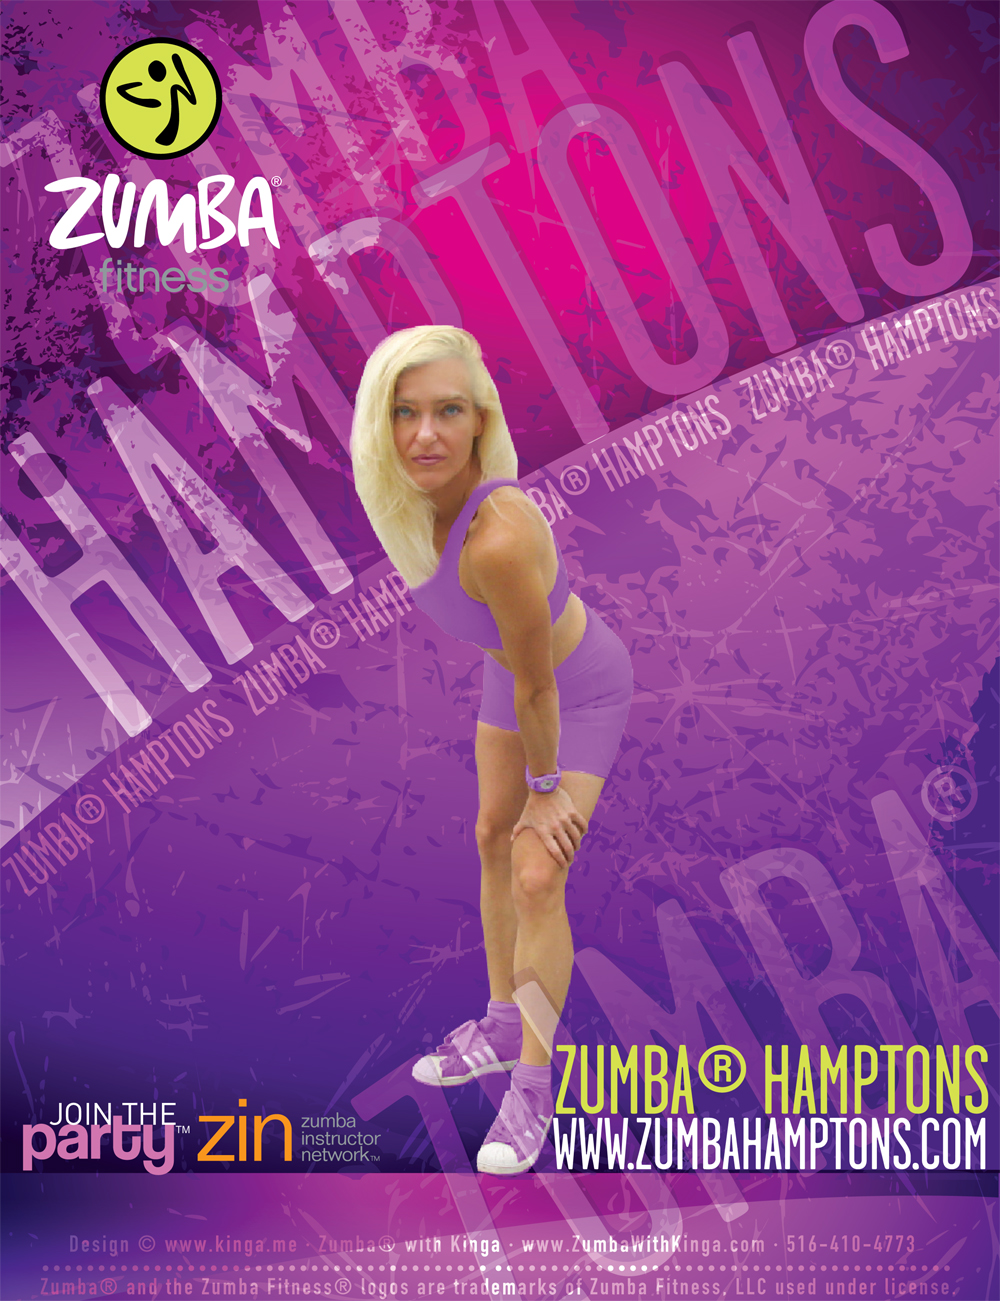 Hamptons Zumba - Zumba Hamptons - The Home of Zumba in the Hamptons Long Island New York - Zumba Dance Fitness Classes, Events, Parties, Gigs in the Hamptons Long Island New York with Long Island Artist, Zumba Dancer, licensed Zumba Instructor, Edina Kinga Agoston